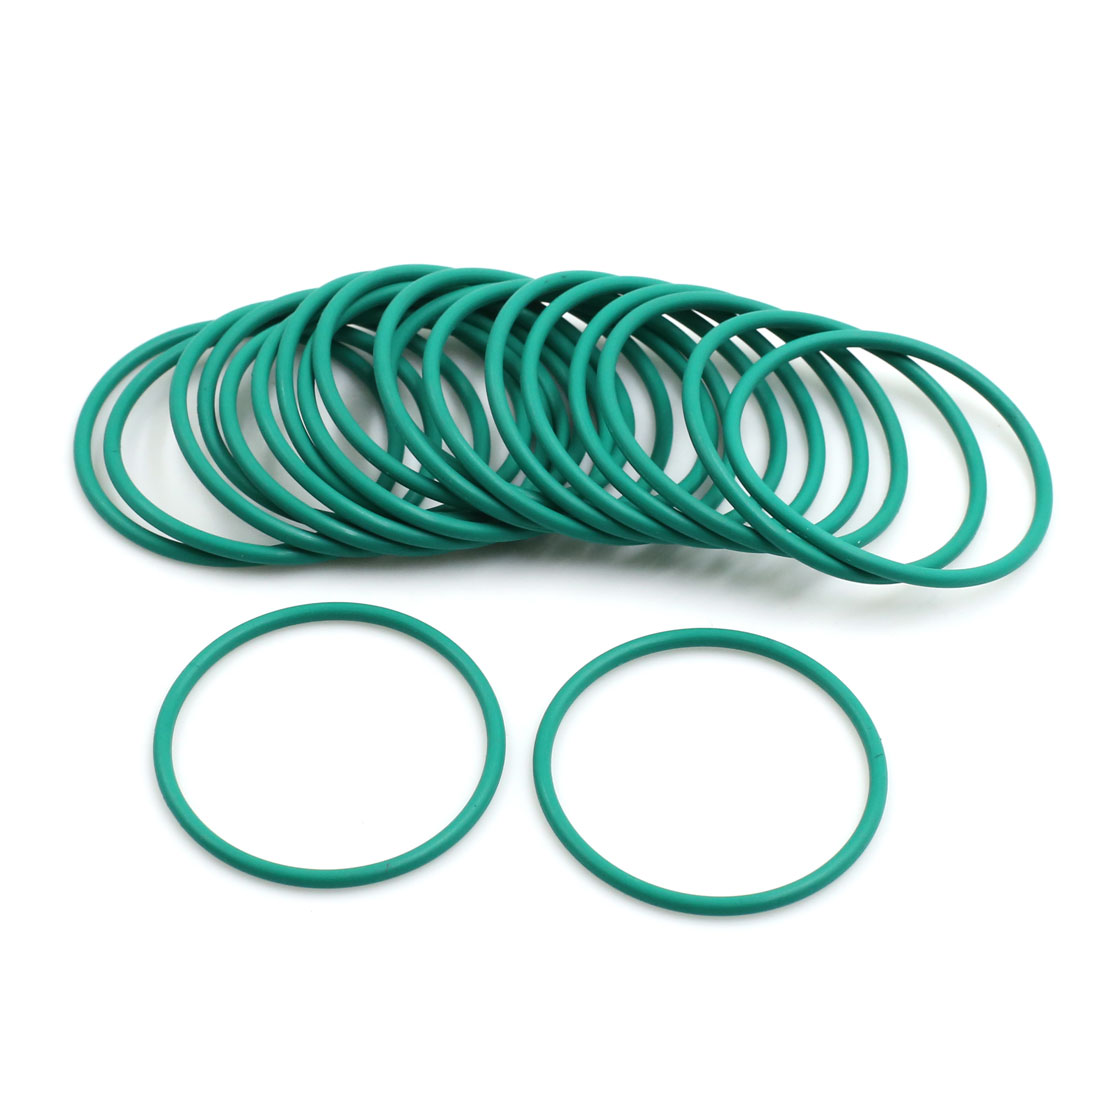 20pcs Green Universal FKM O-Ring Sealing Gasket Washer for Car 36mm x 2mm